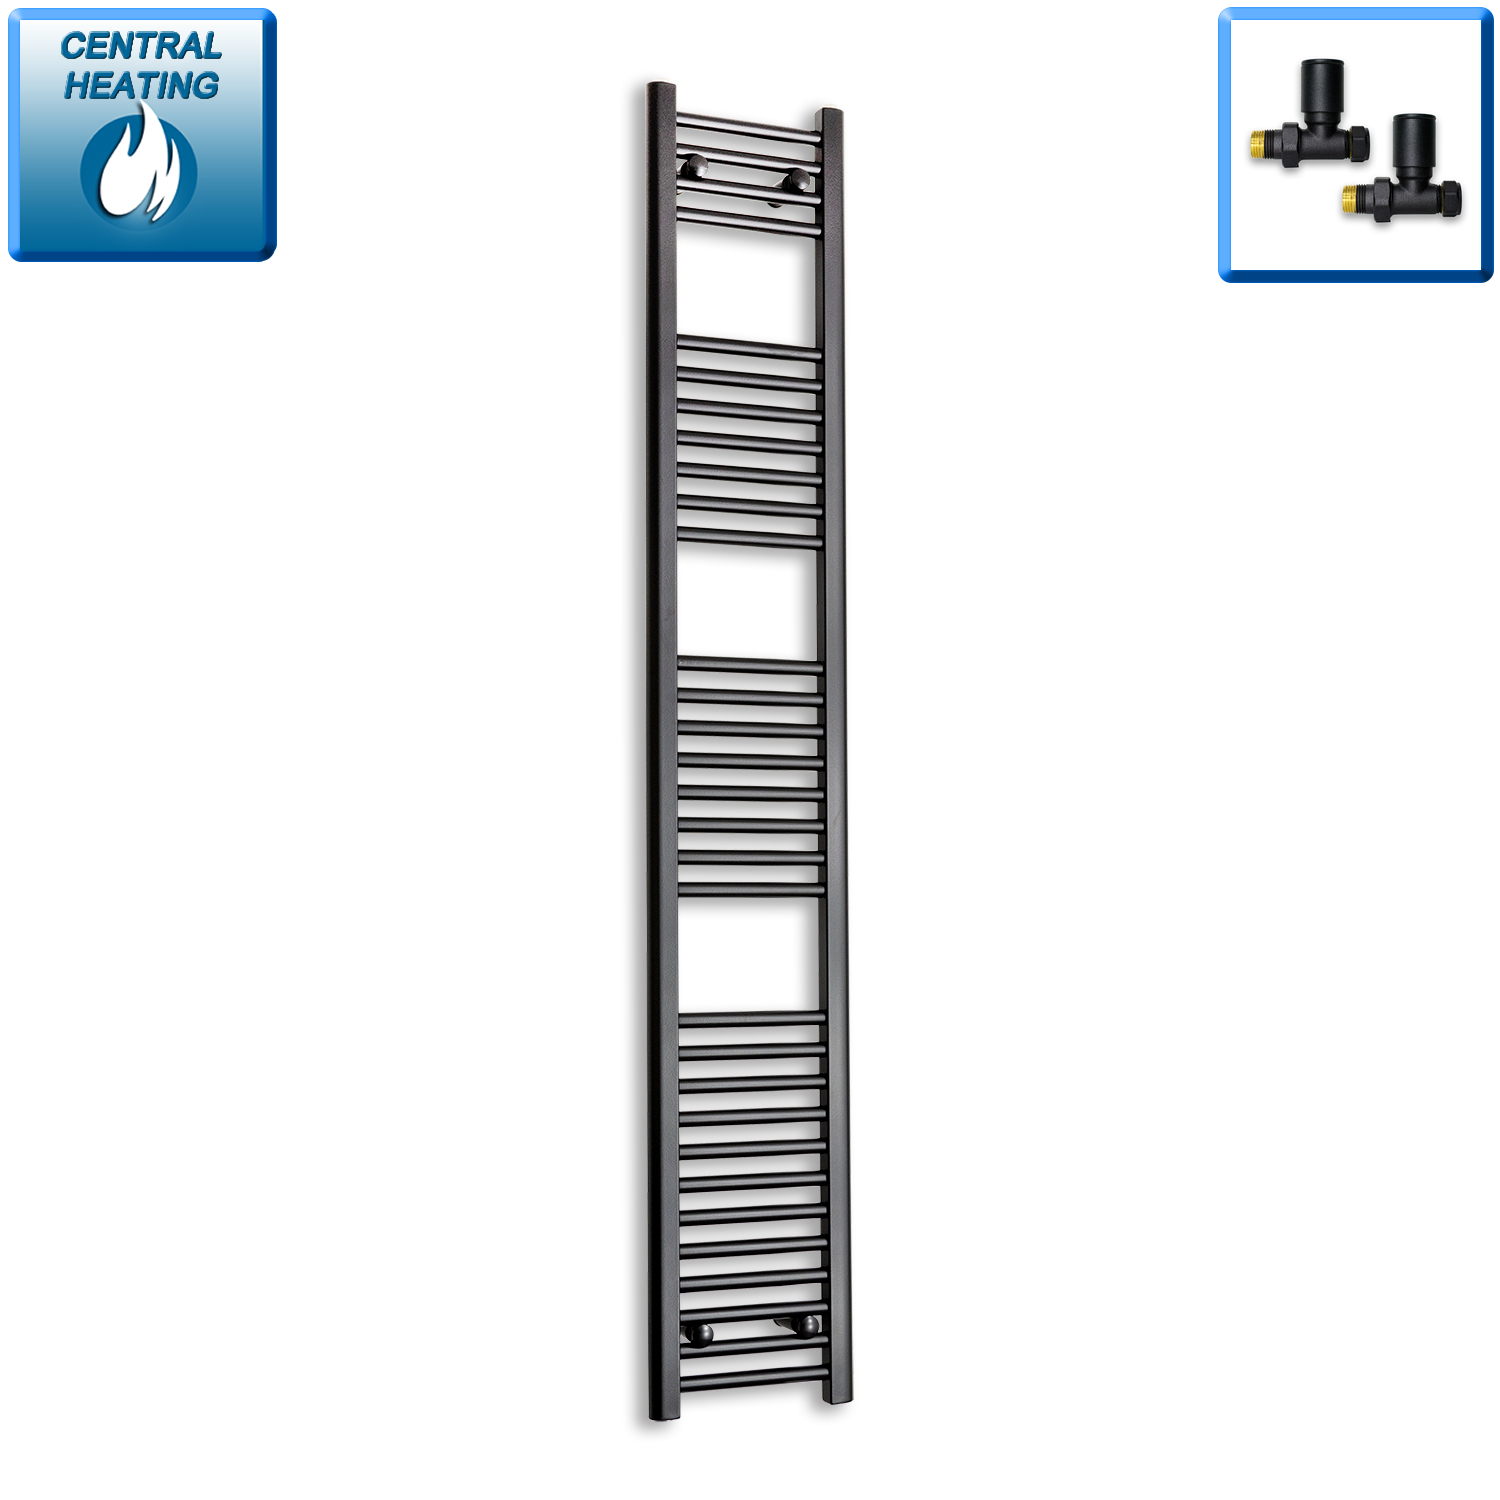 300mm Wide 1800mm High Black Towel Rail Radiator With Straight Valve